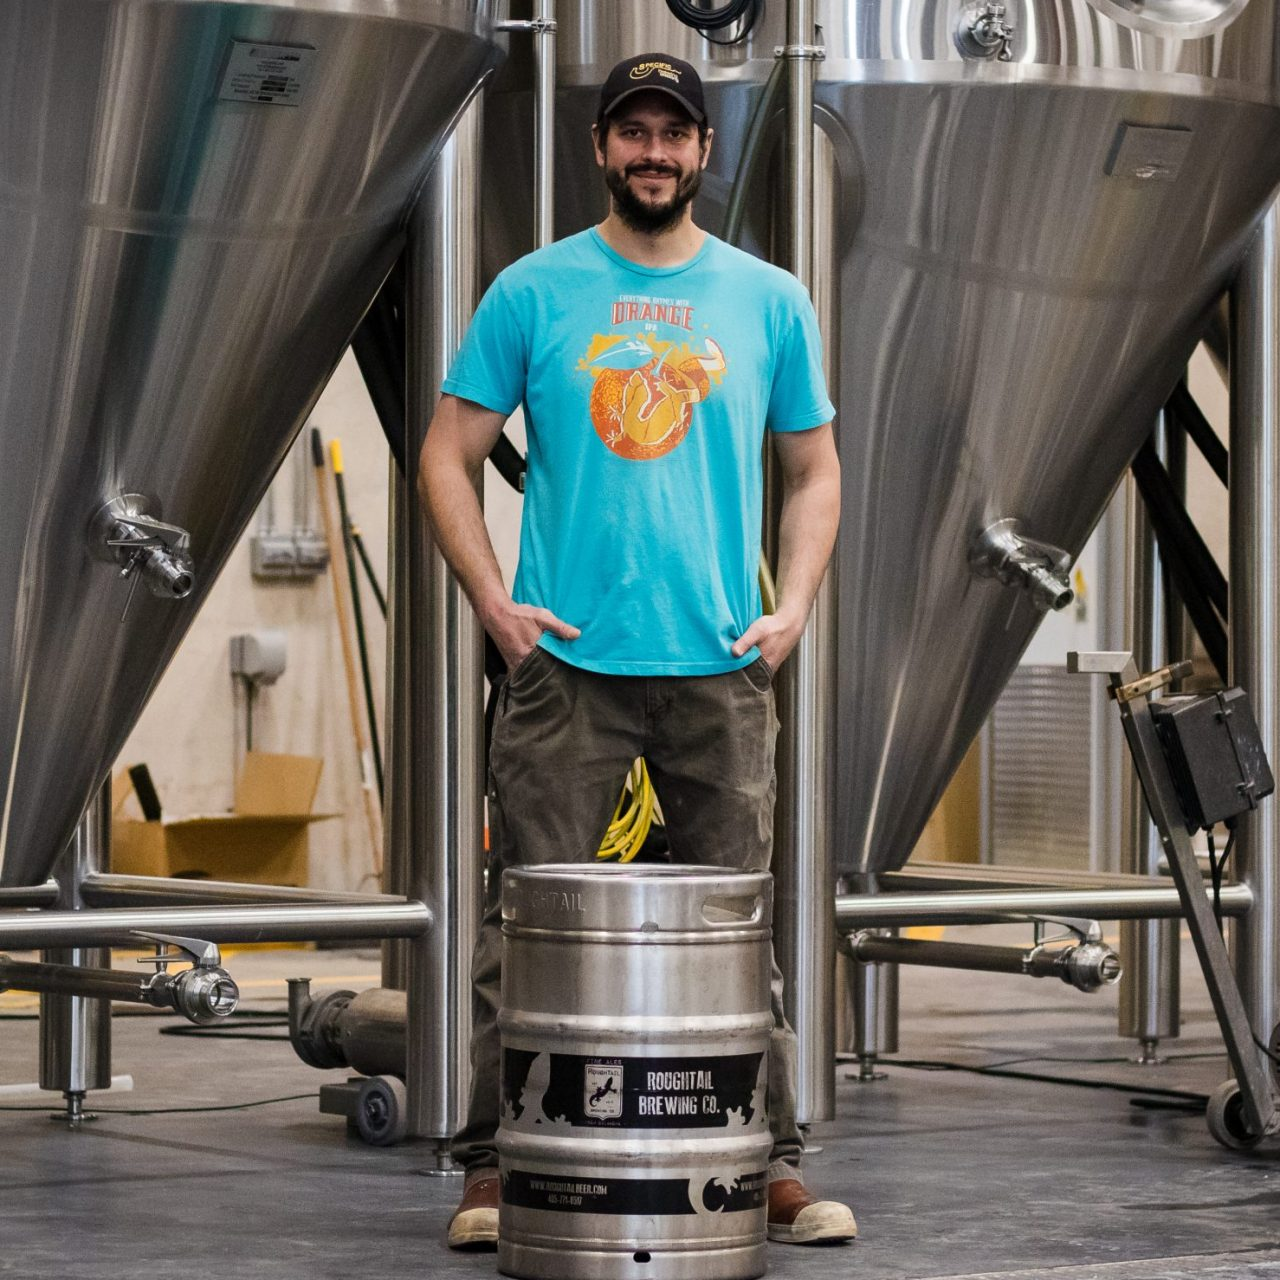 https://roughtailbeer.com/wp-content/uploads/2021/02/Roughtail_Photo-Shoot-151-scaled-e1612562104890-1280x1280.jpg